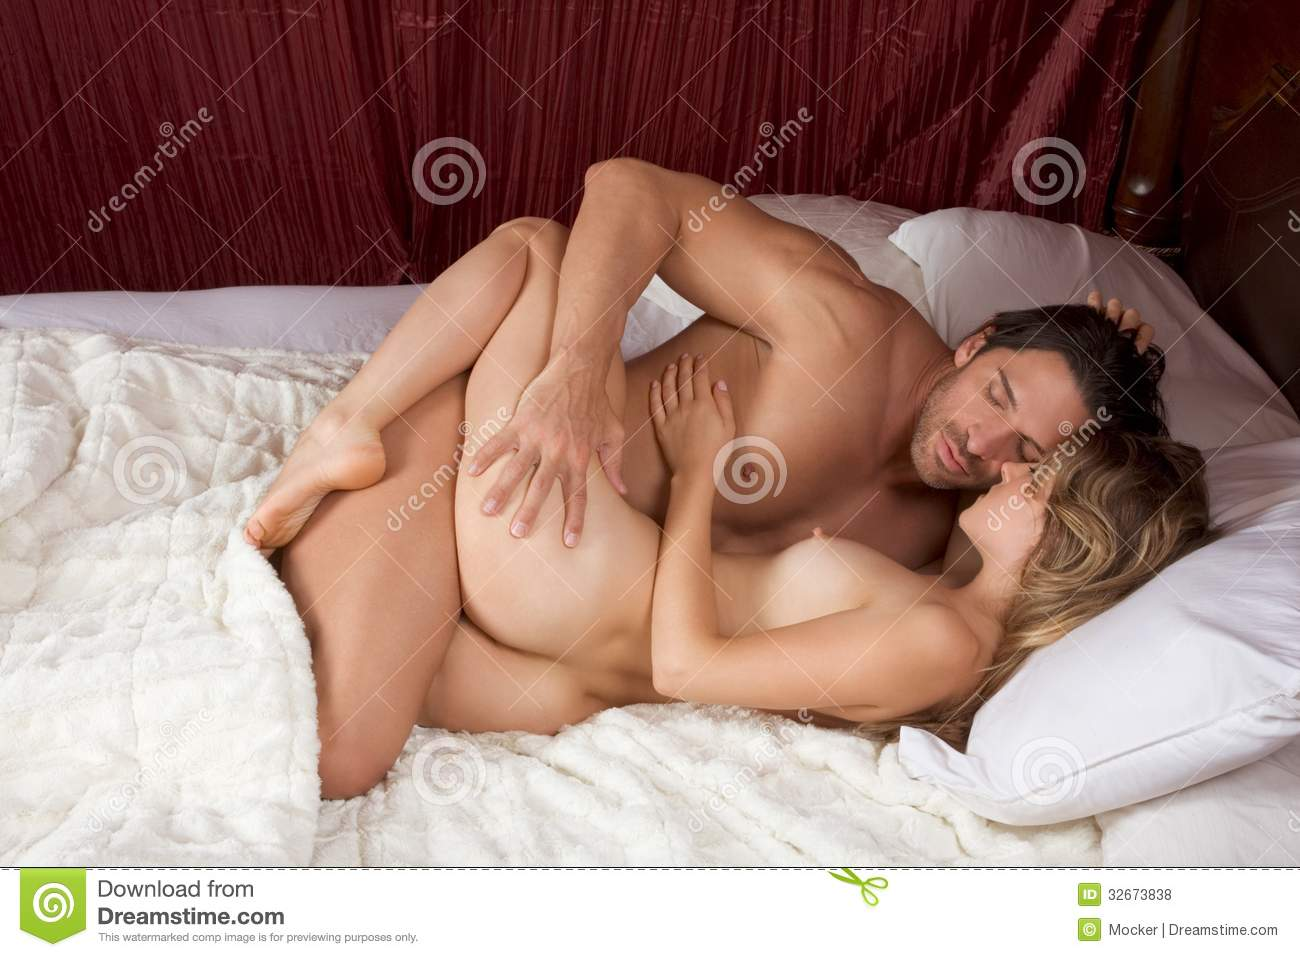 Erotic naked couples pictures